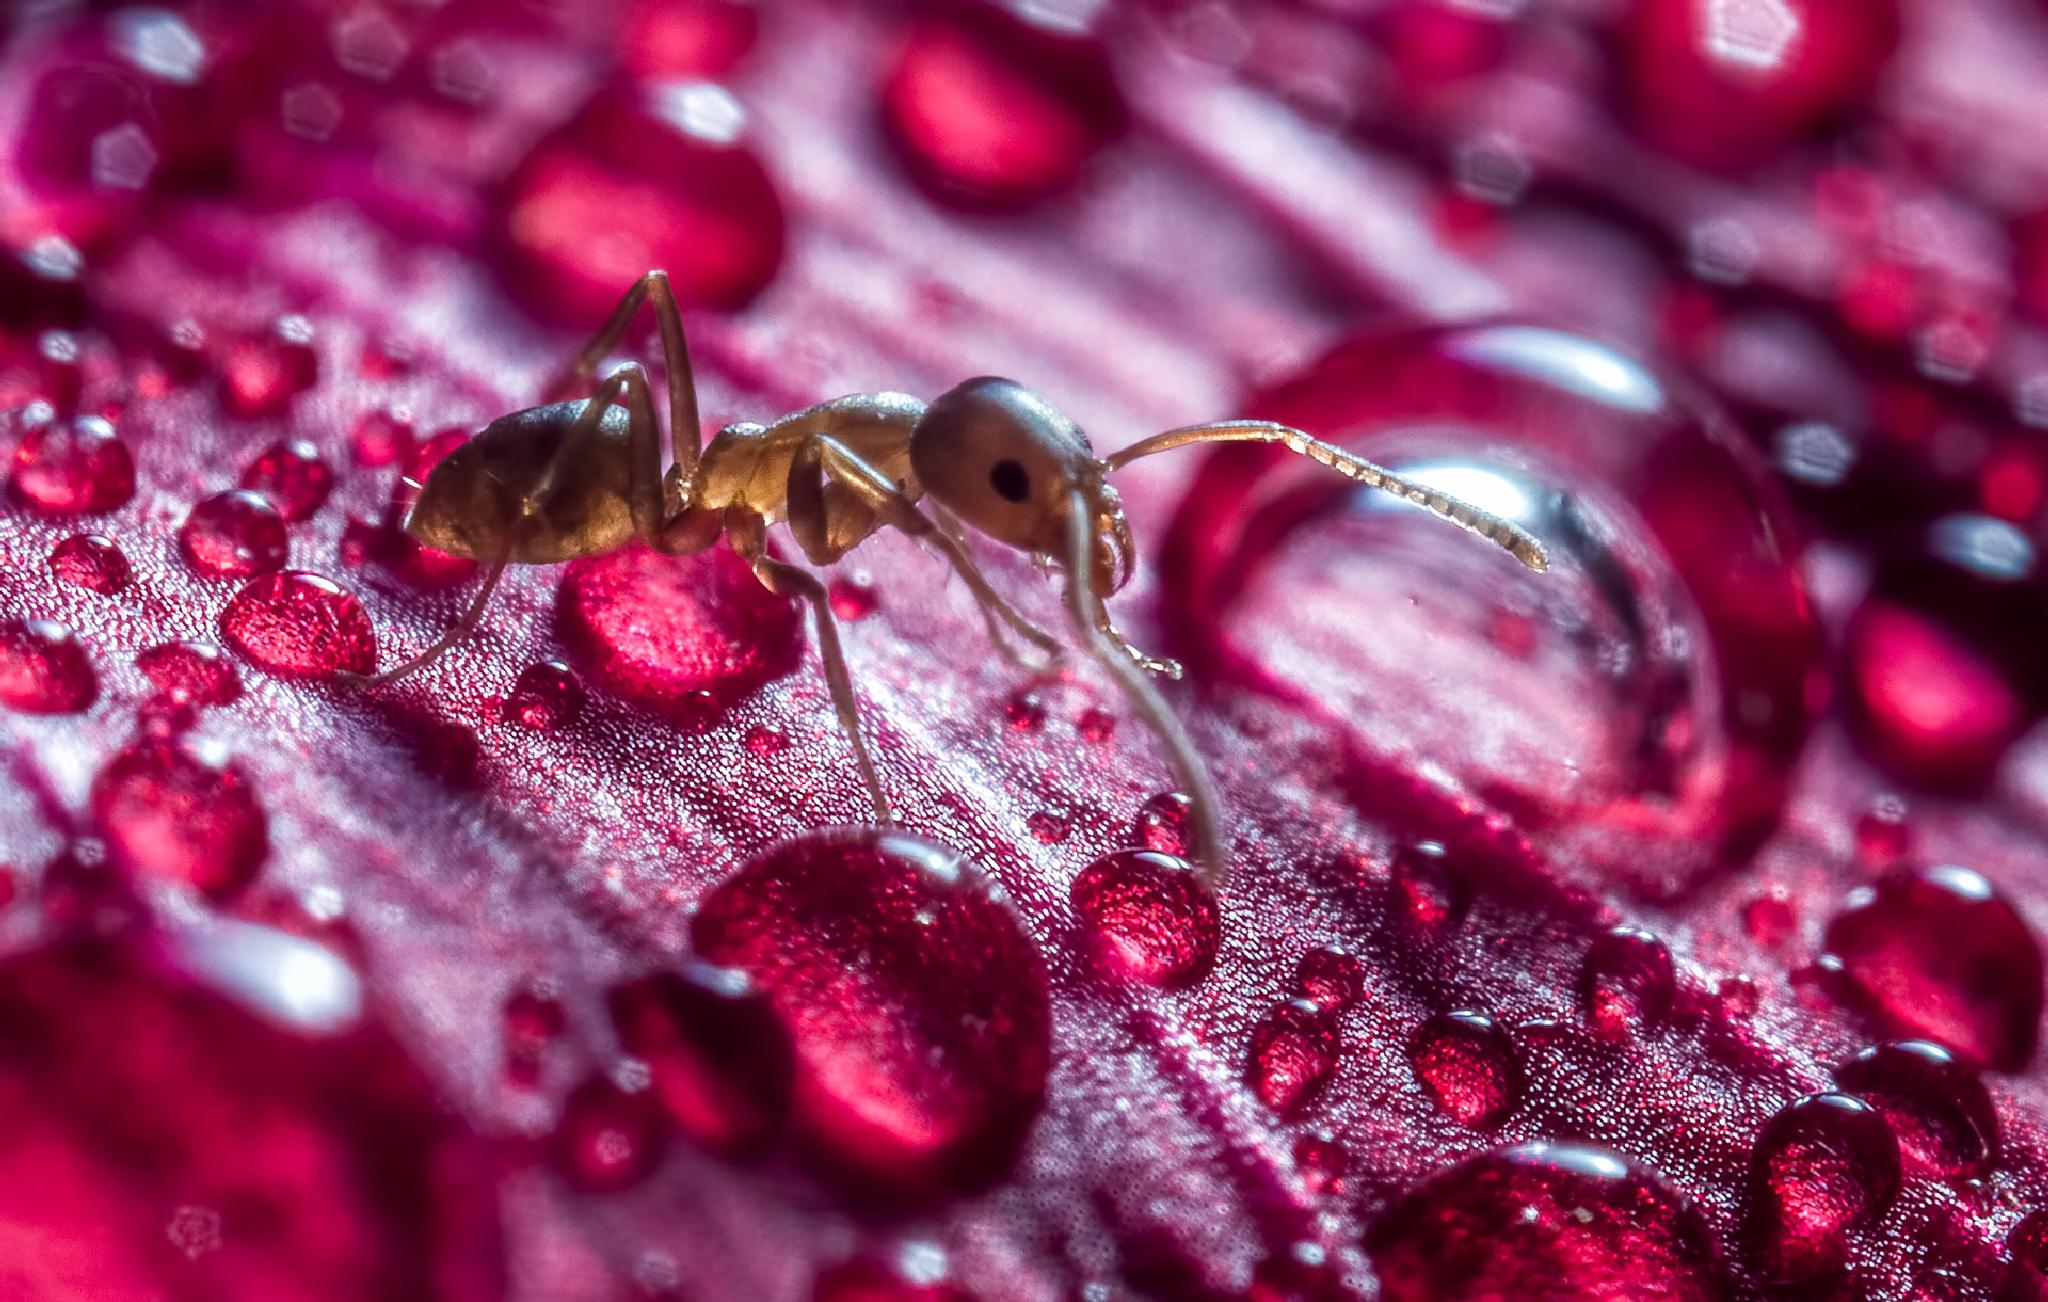 Ants and Drops by Jorge Figueroa Arce